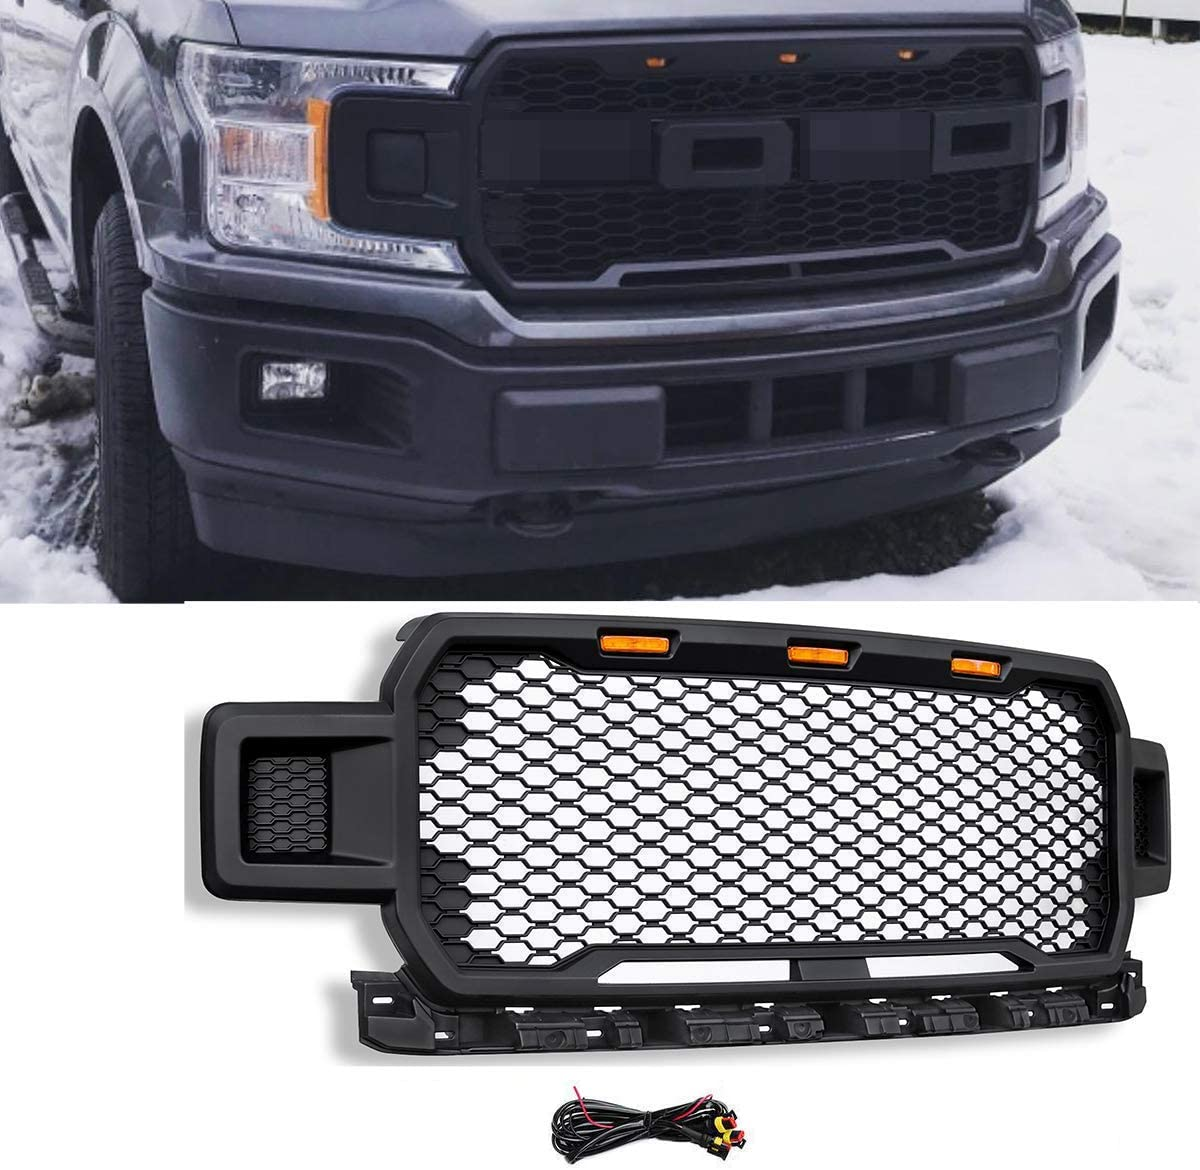 Black Replacement Grille ABS Front Mesh Grill Fit for 2018-19 Ford F-150 with 3 Amber LED Lights with Wiring Harness Kits and 2 Side LED Lights